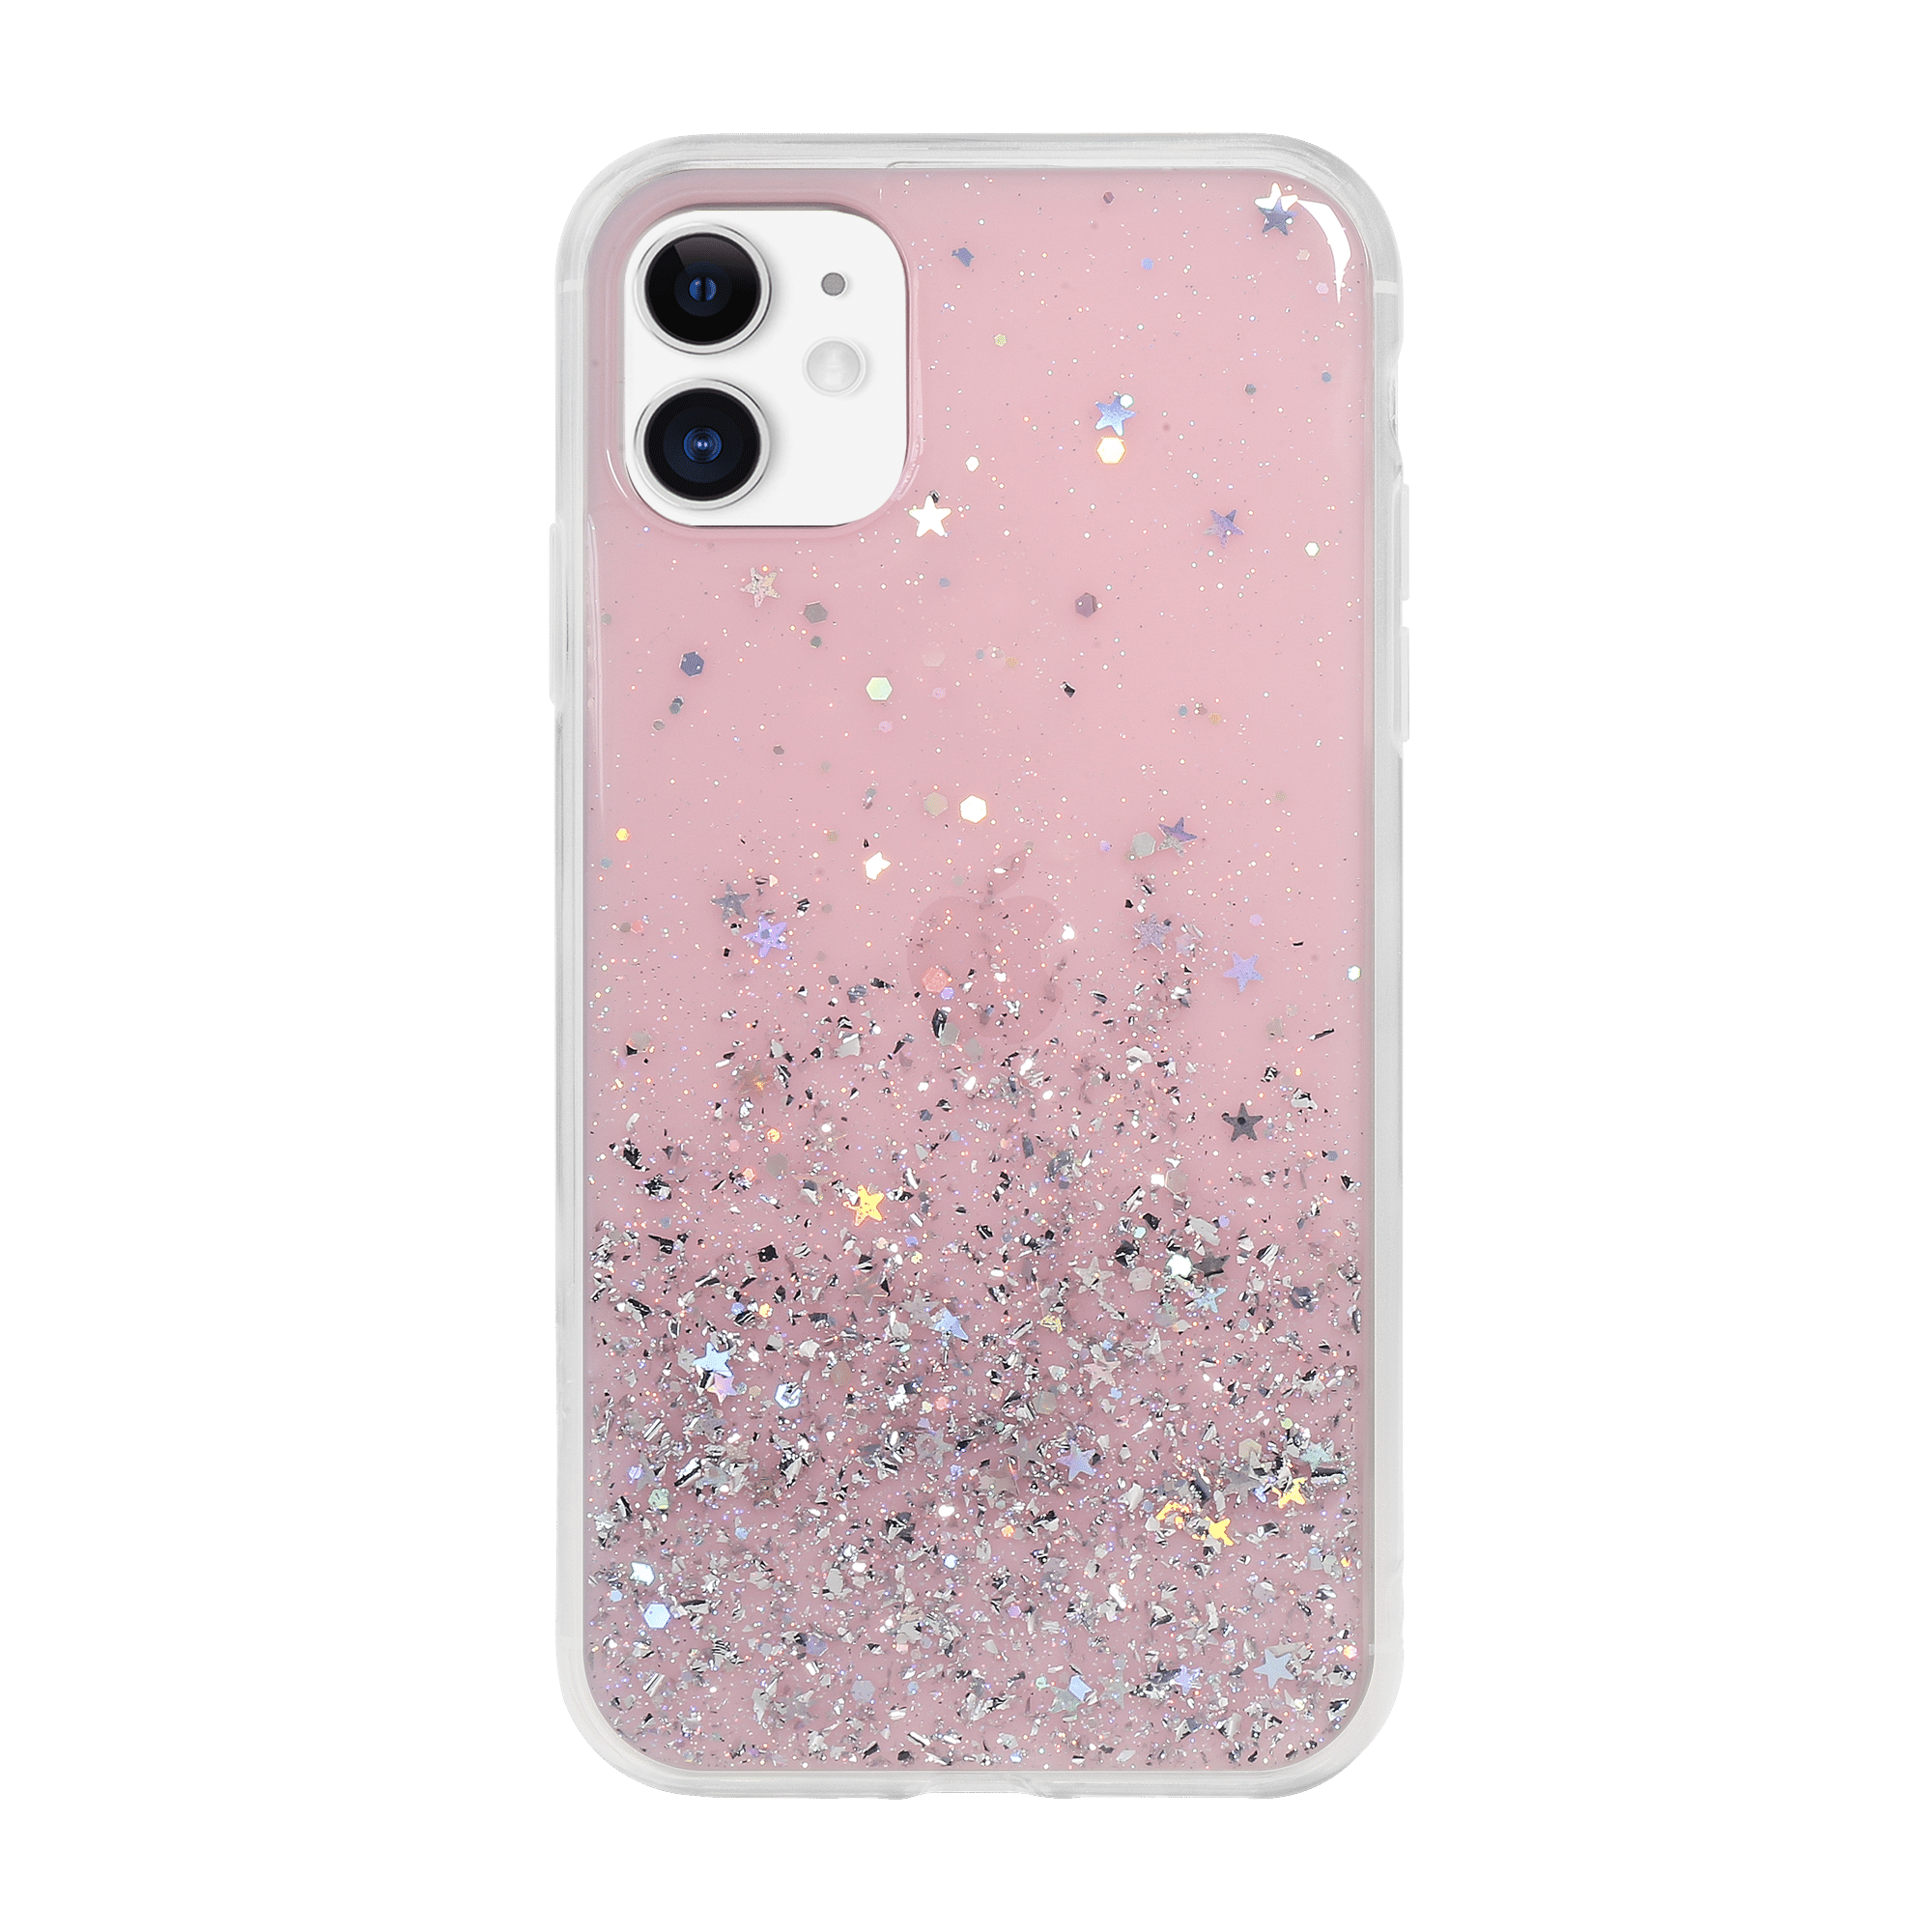 GLASS for iPhone Case REVIEW: No longer hide the color of